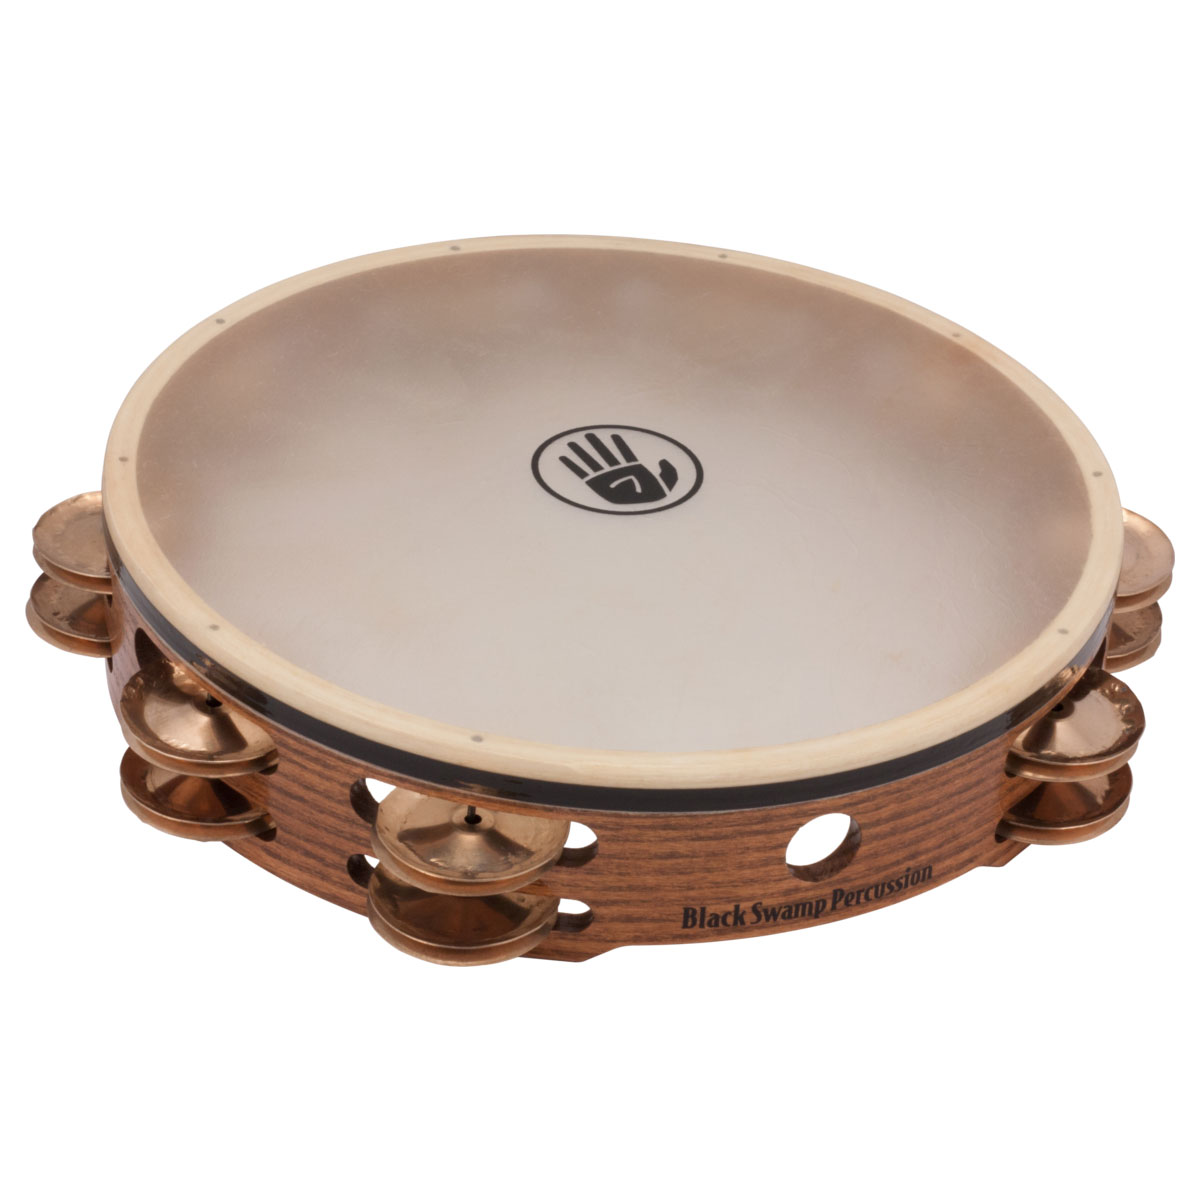 "Black Swamp 10"" SoundArt Double Row Beryllium Copper Tambourine (Natural Head)"